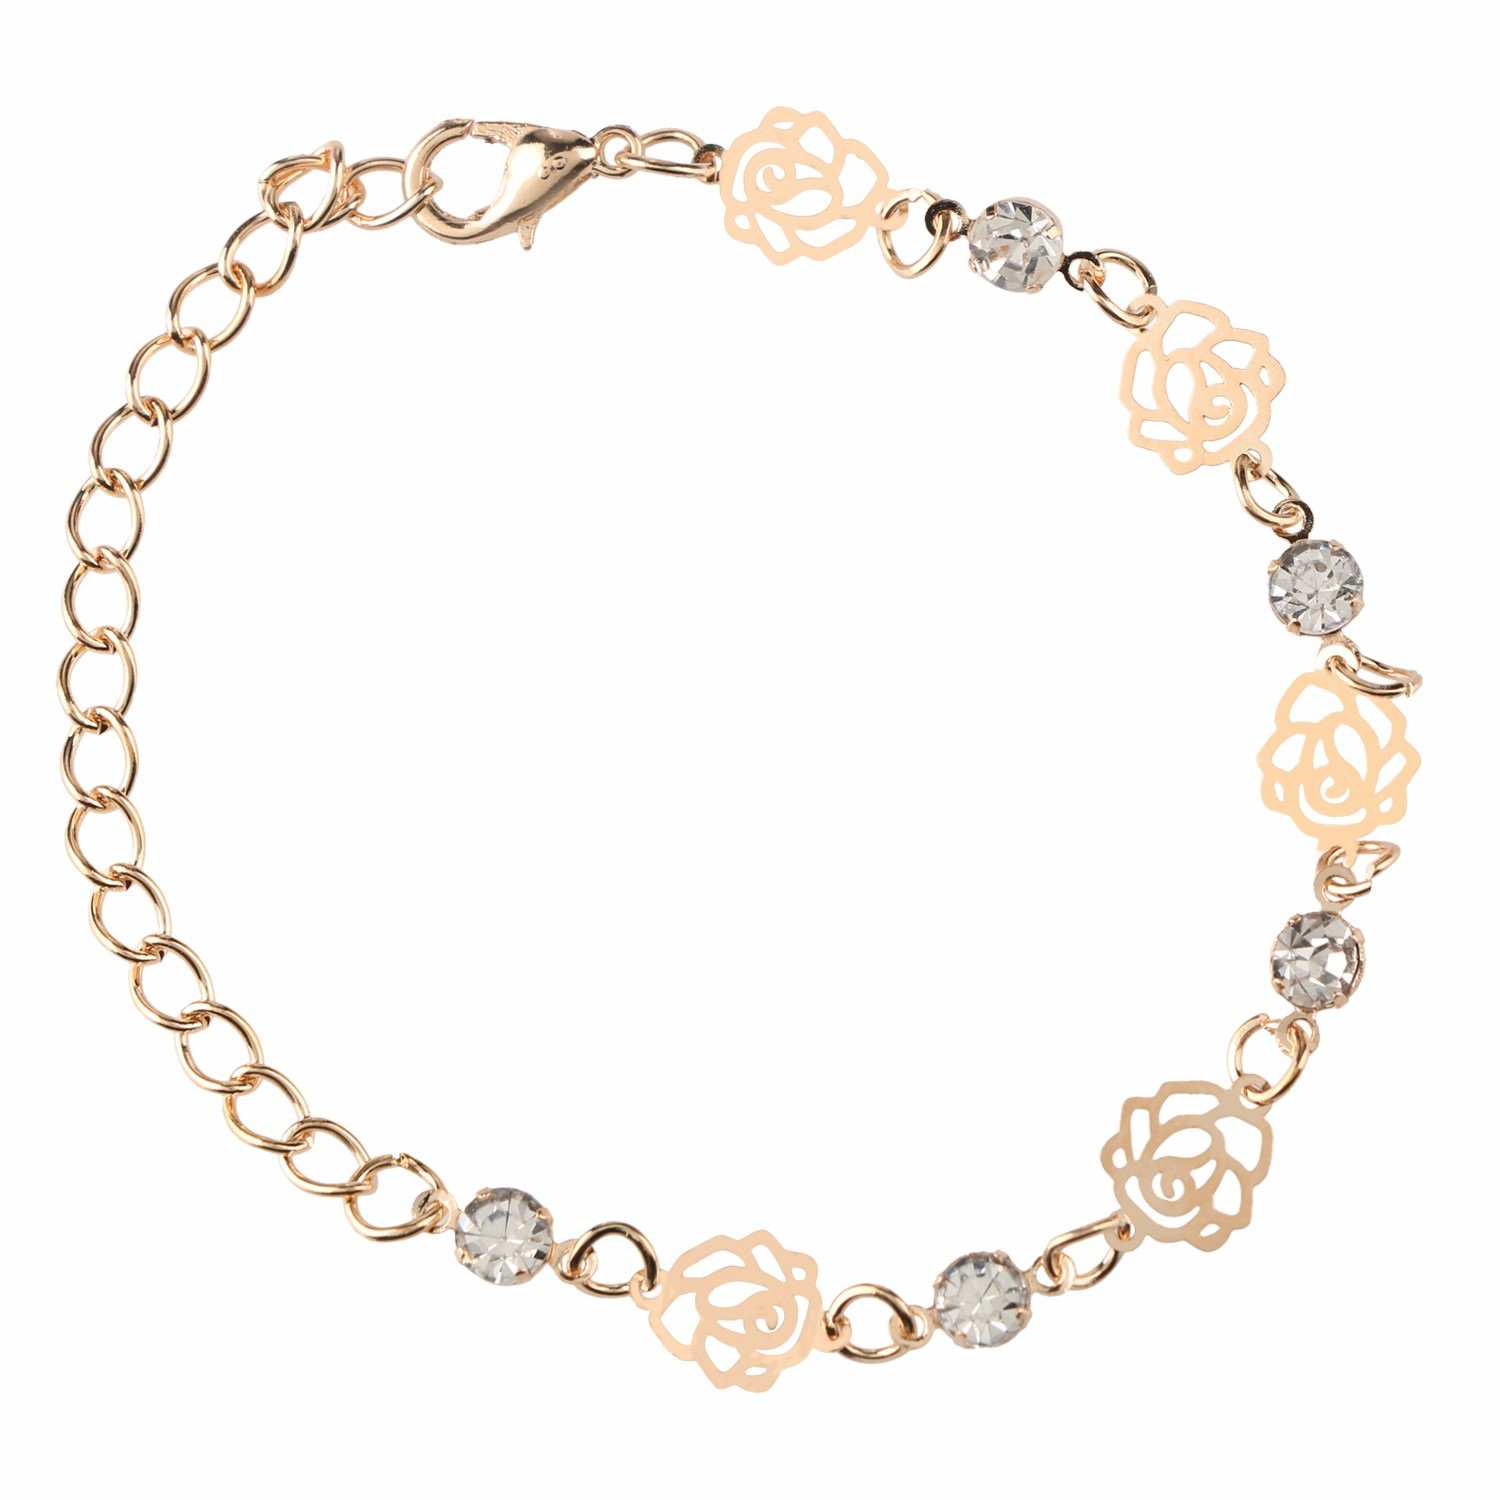 Efulgenz Rose Gold Plated Charm Fashion Bracelets Anklet Novelty Costume Fashion Jewellery for Girls and Women Love Gift